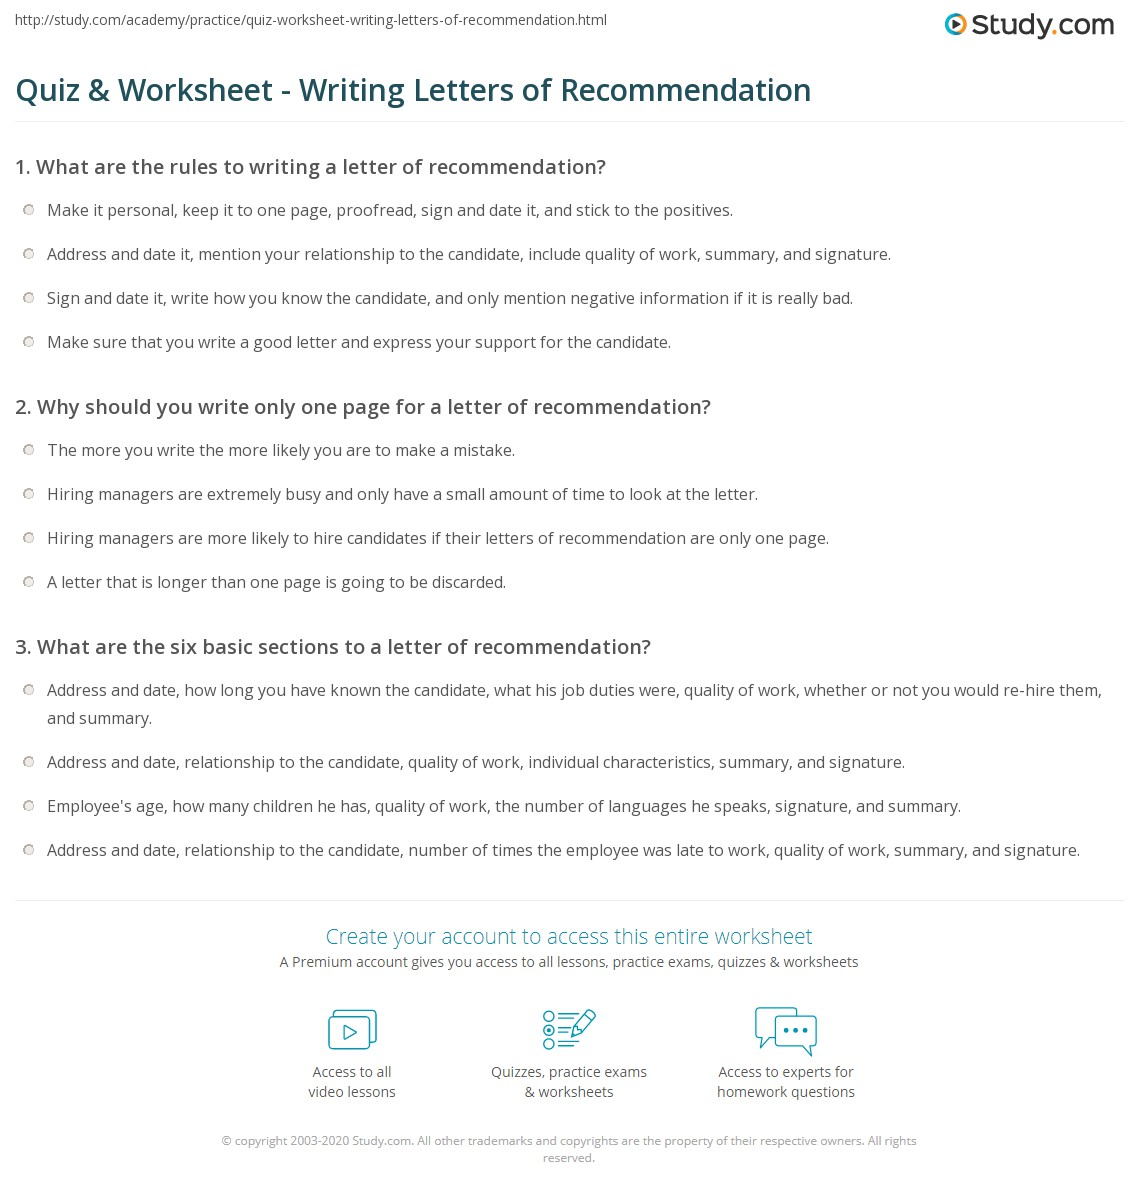 Study Com Academy Practice Quiz Worksheet Writing